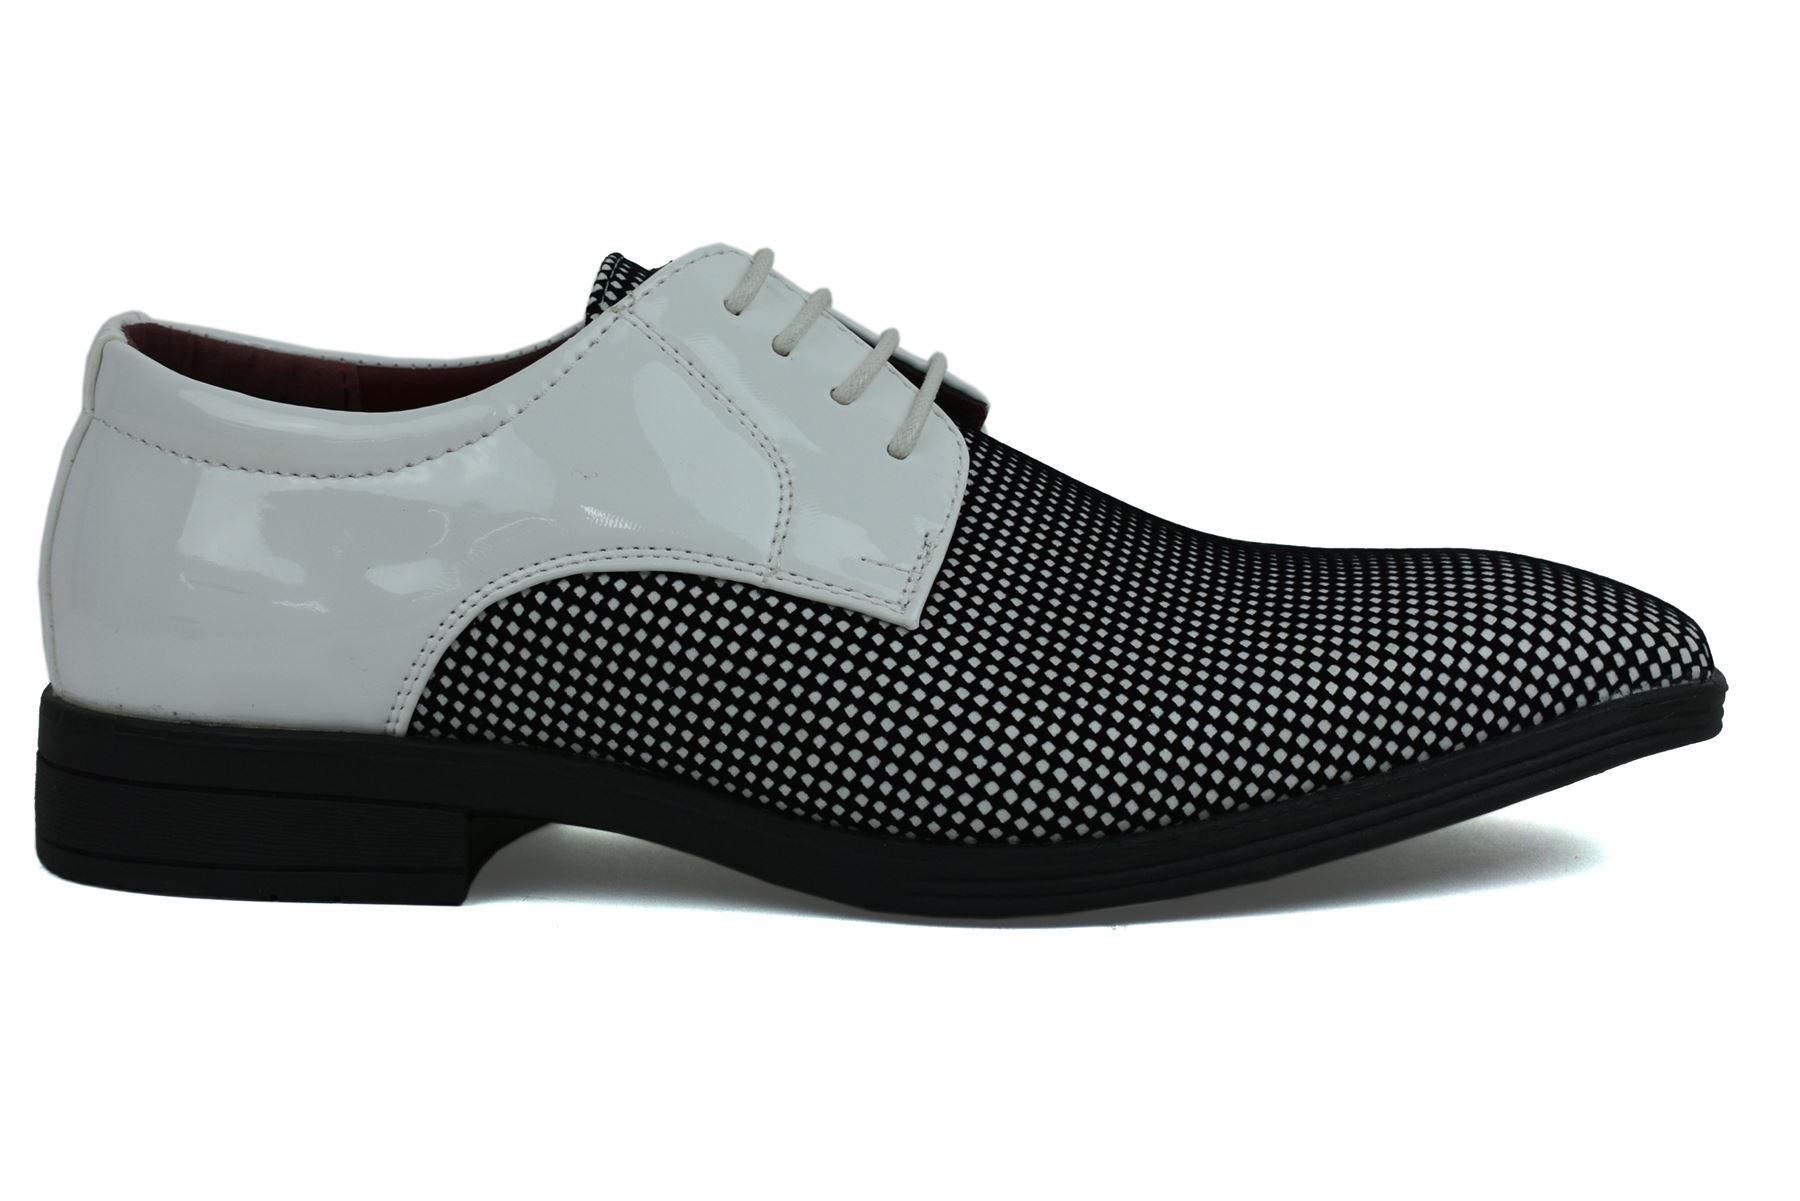 Mens-UK-Style-Leather-Lining-Formal-Office-Wedding-Smart-Work-Brogue-Shoes thumbnail 95